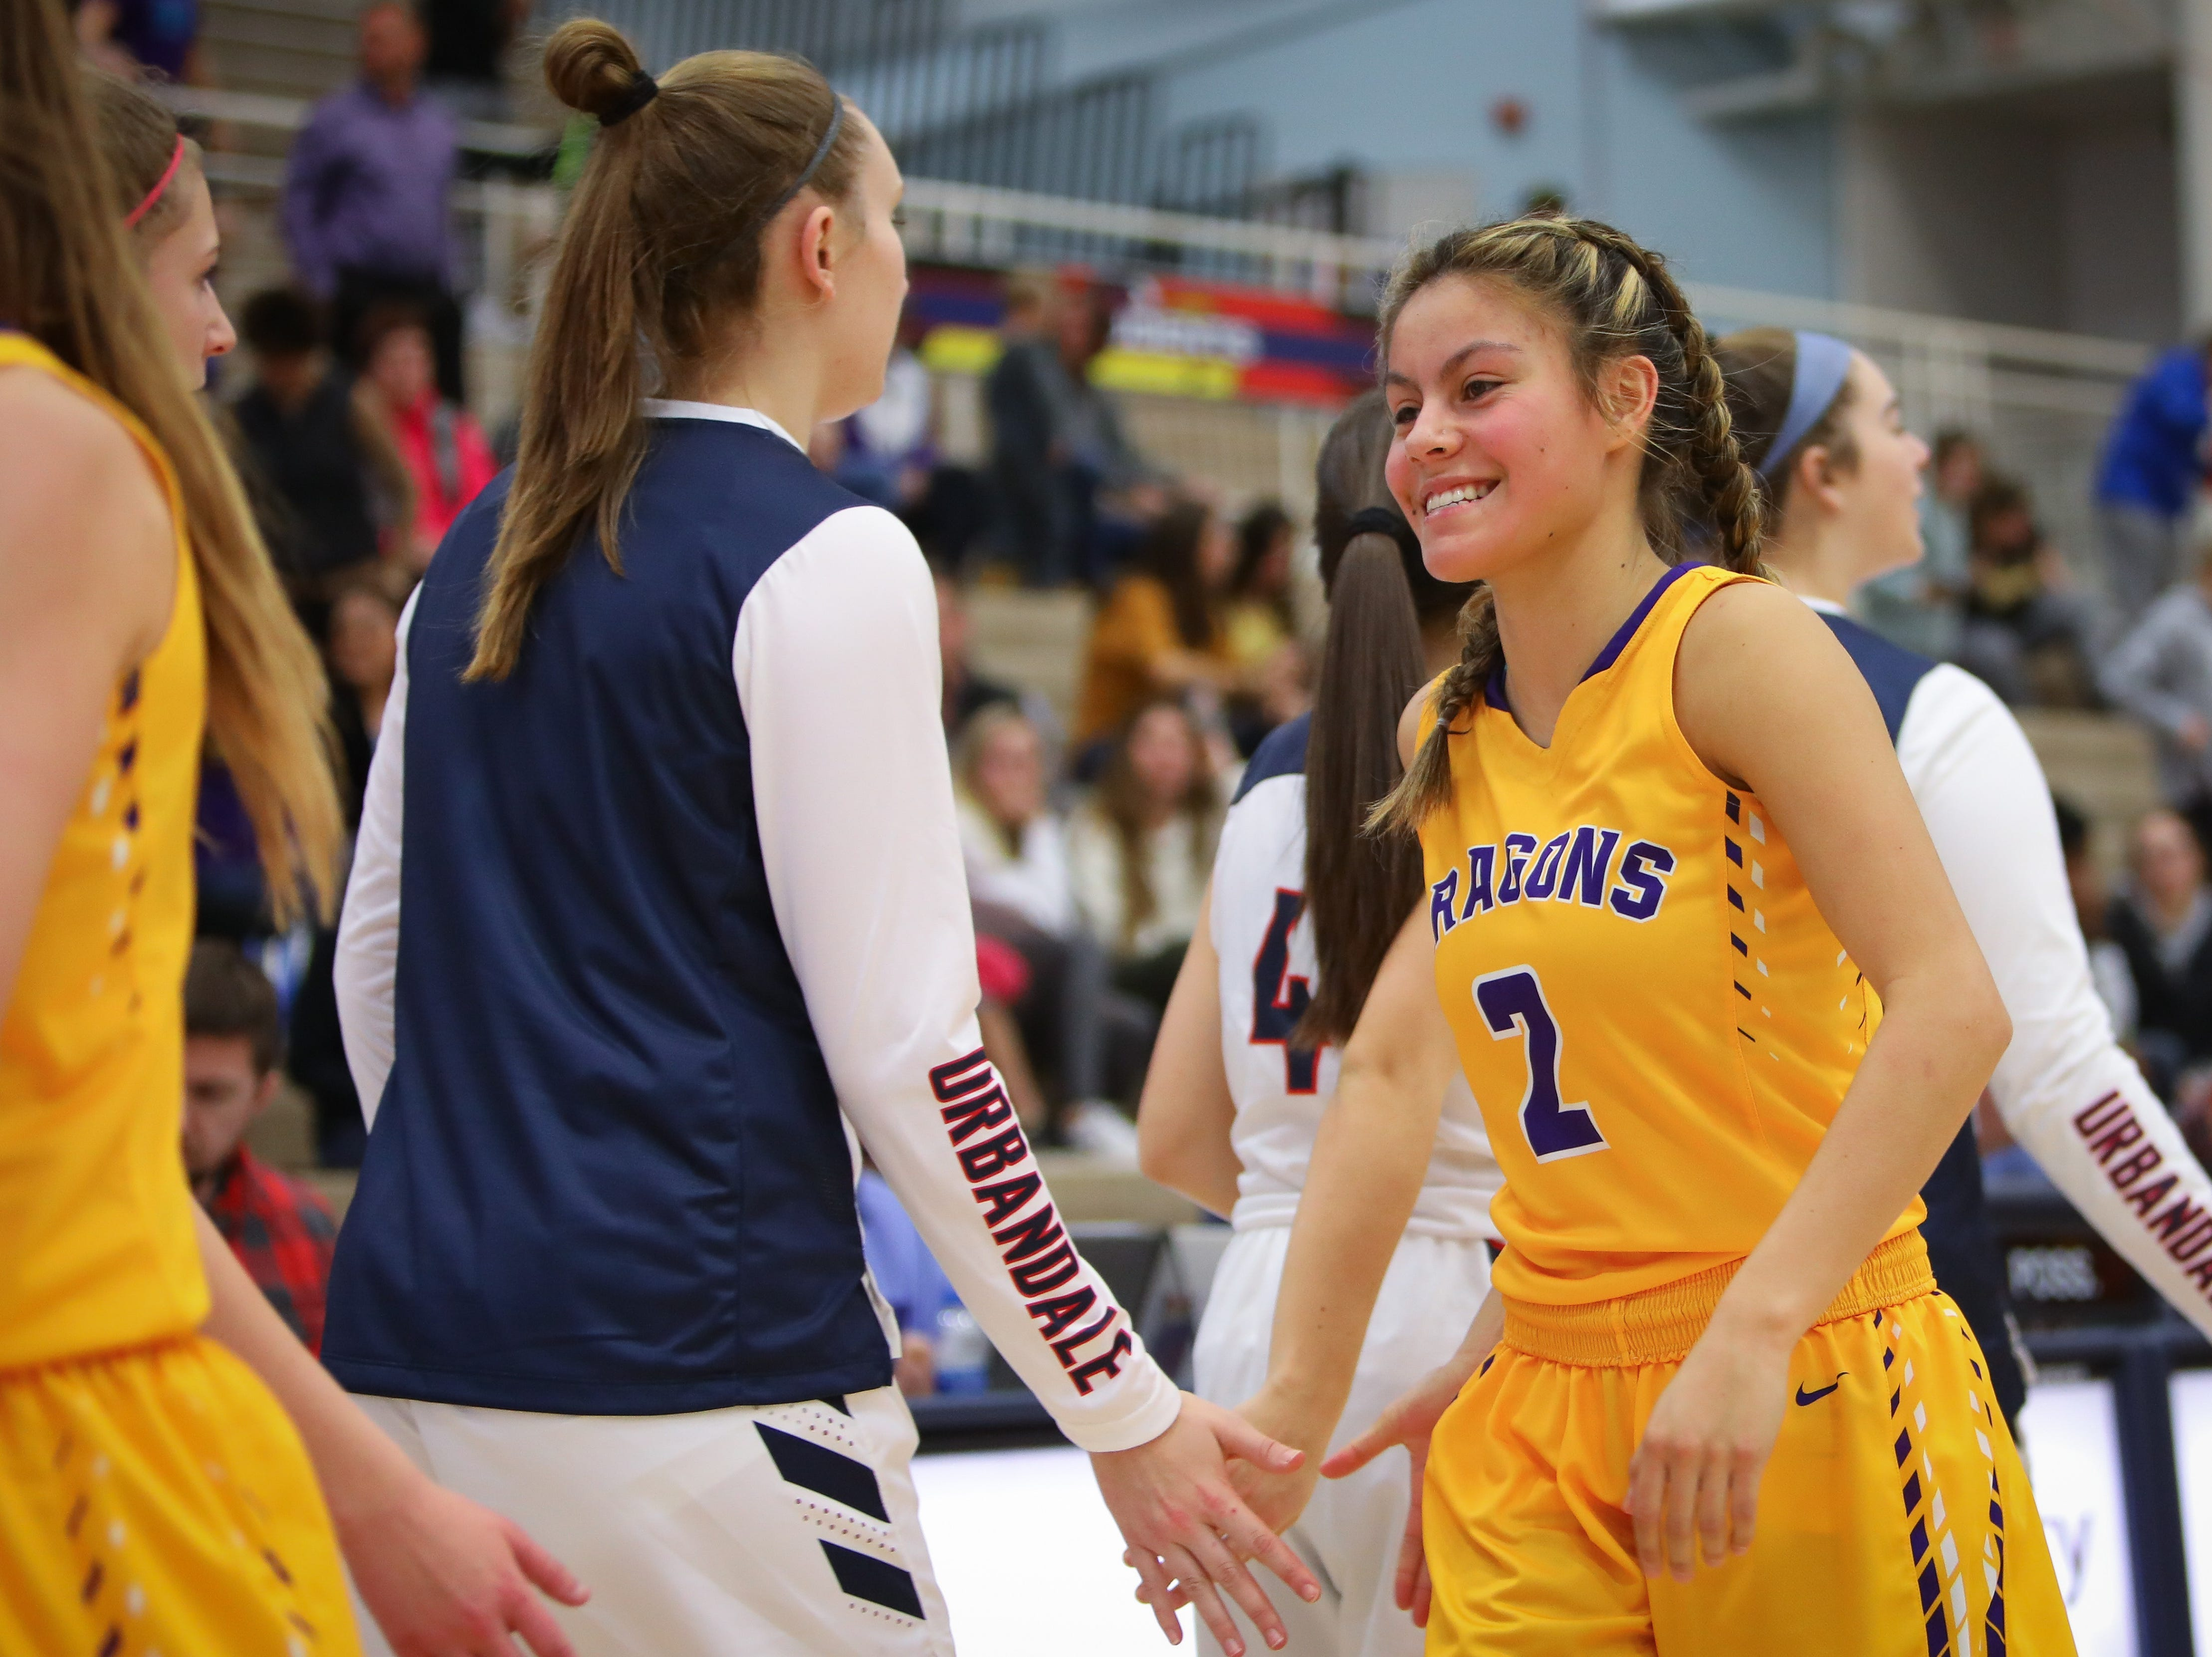 Johnston junior Maya McDermott celebrates after the Dragons defeated the Urbandale J-Hawks, 60-34, in a girls high school basketball game at Urbandale High School on Dec. 18, 2018 in Urbandale, Iowa.